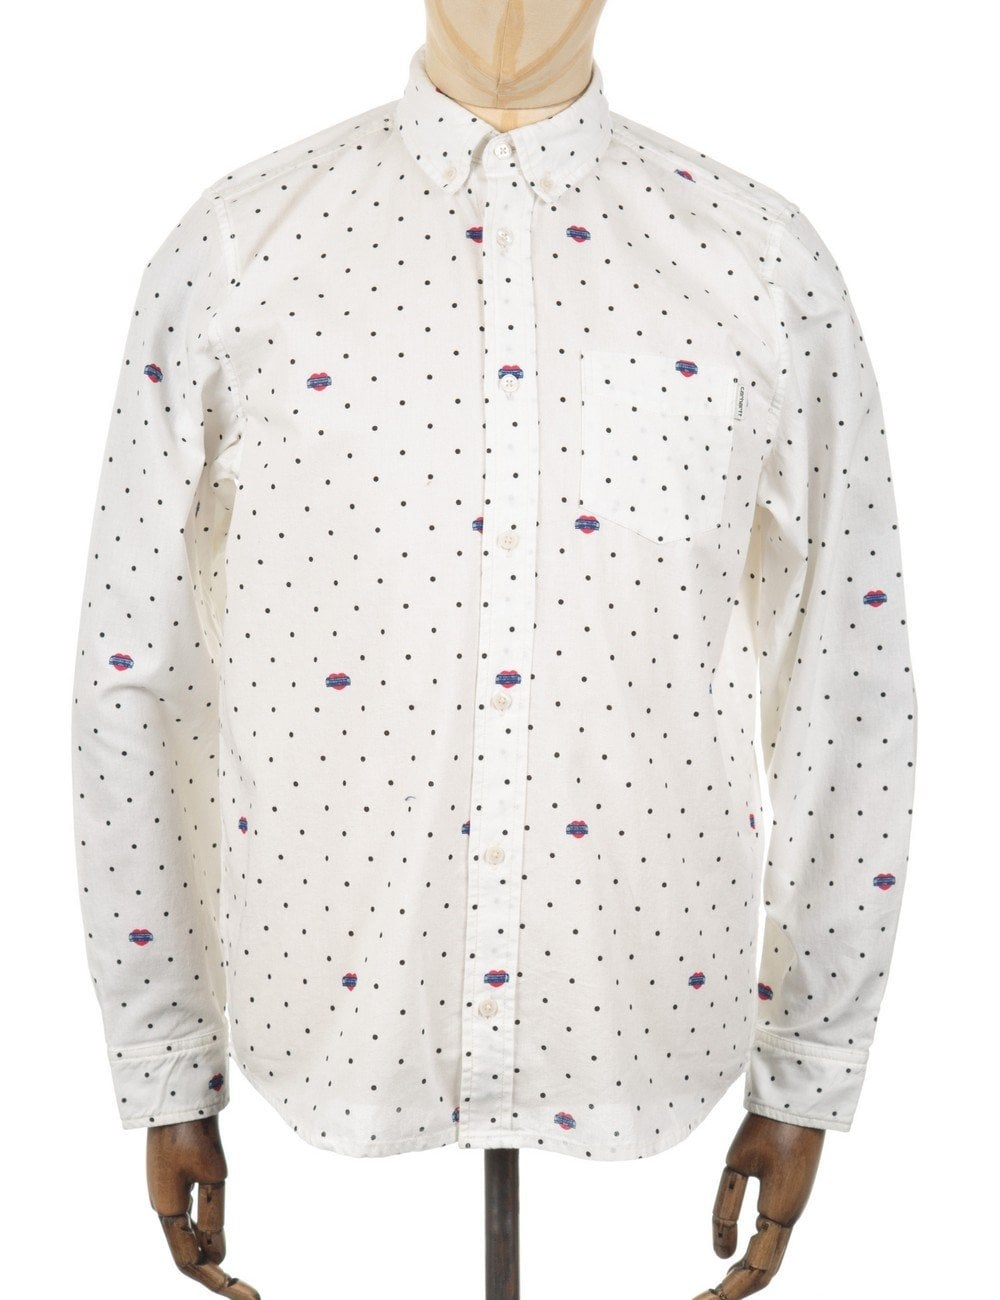 the best attitude 100% top quality hot products LS Crandall Shirt - White Heart Polka Dots